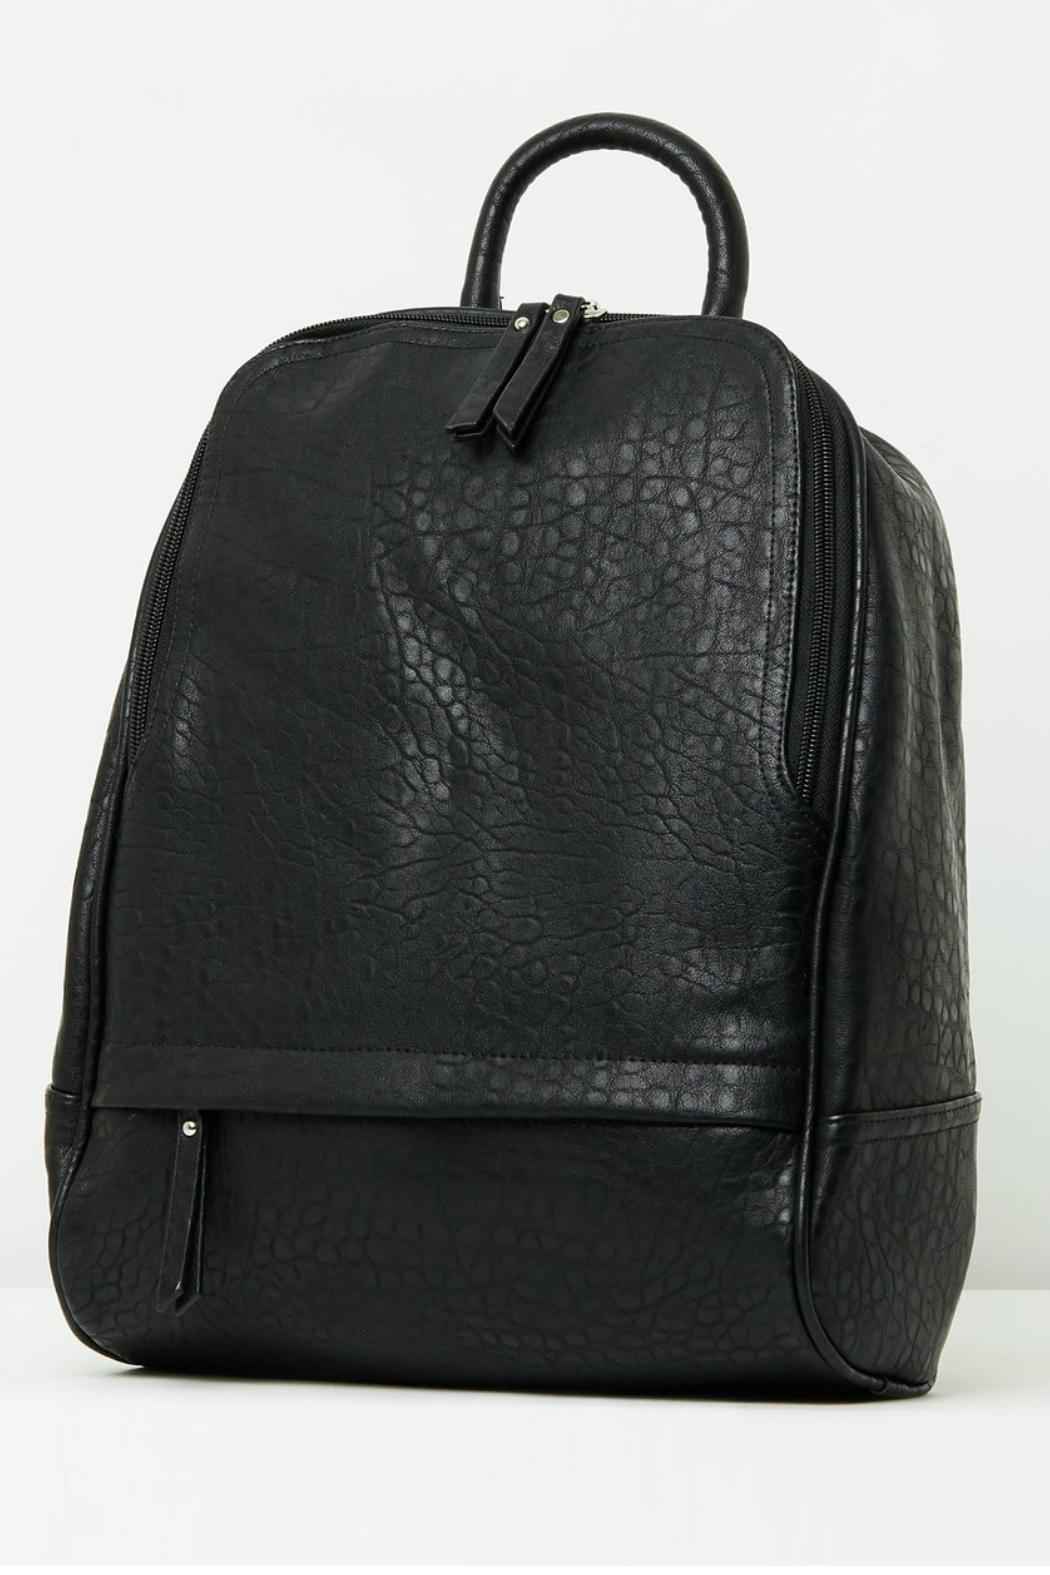 Urban Originals My Way Backpack from New South Wales by